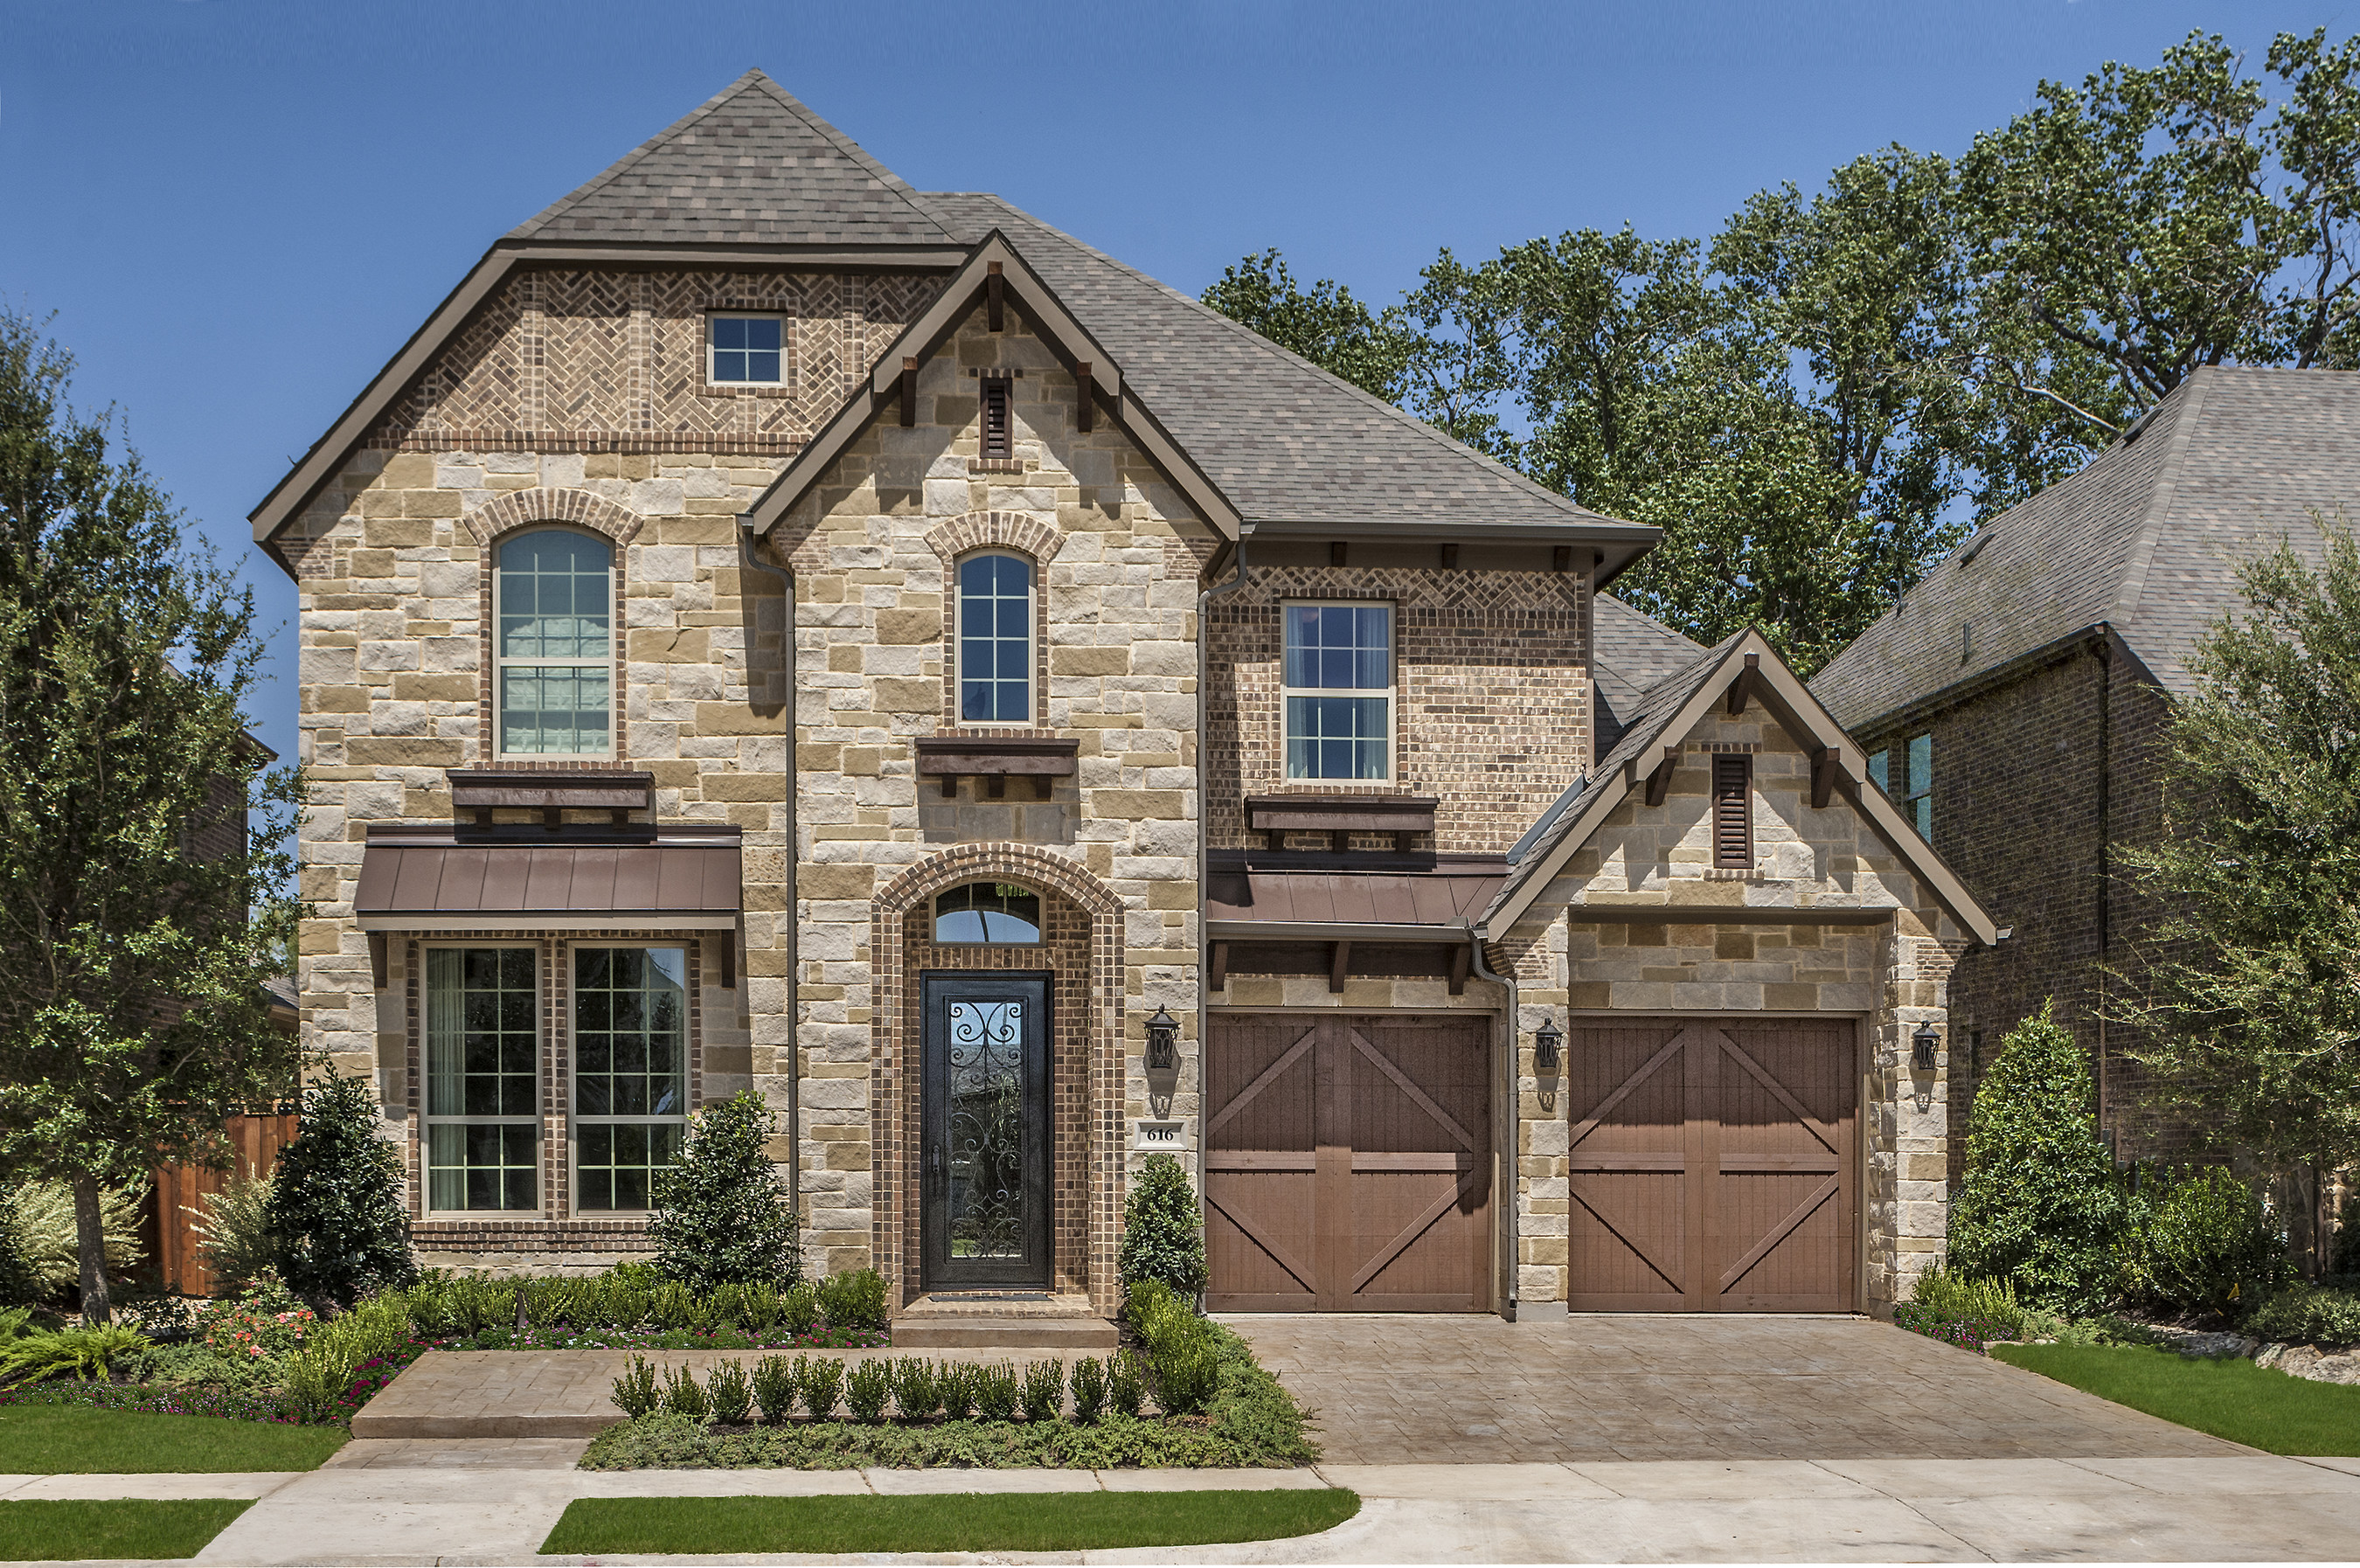 Standard pacific homes offers new home designs in coppell for Standard home plans